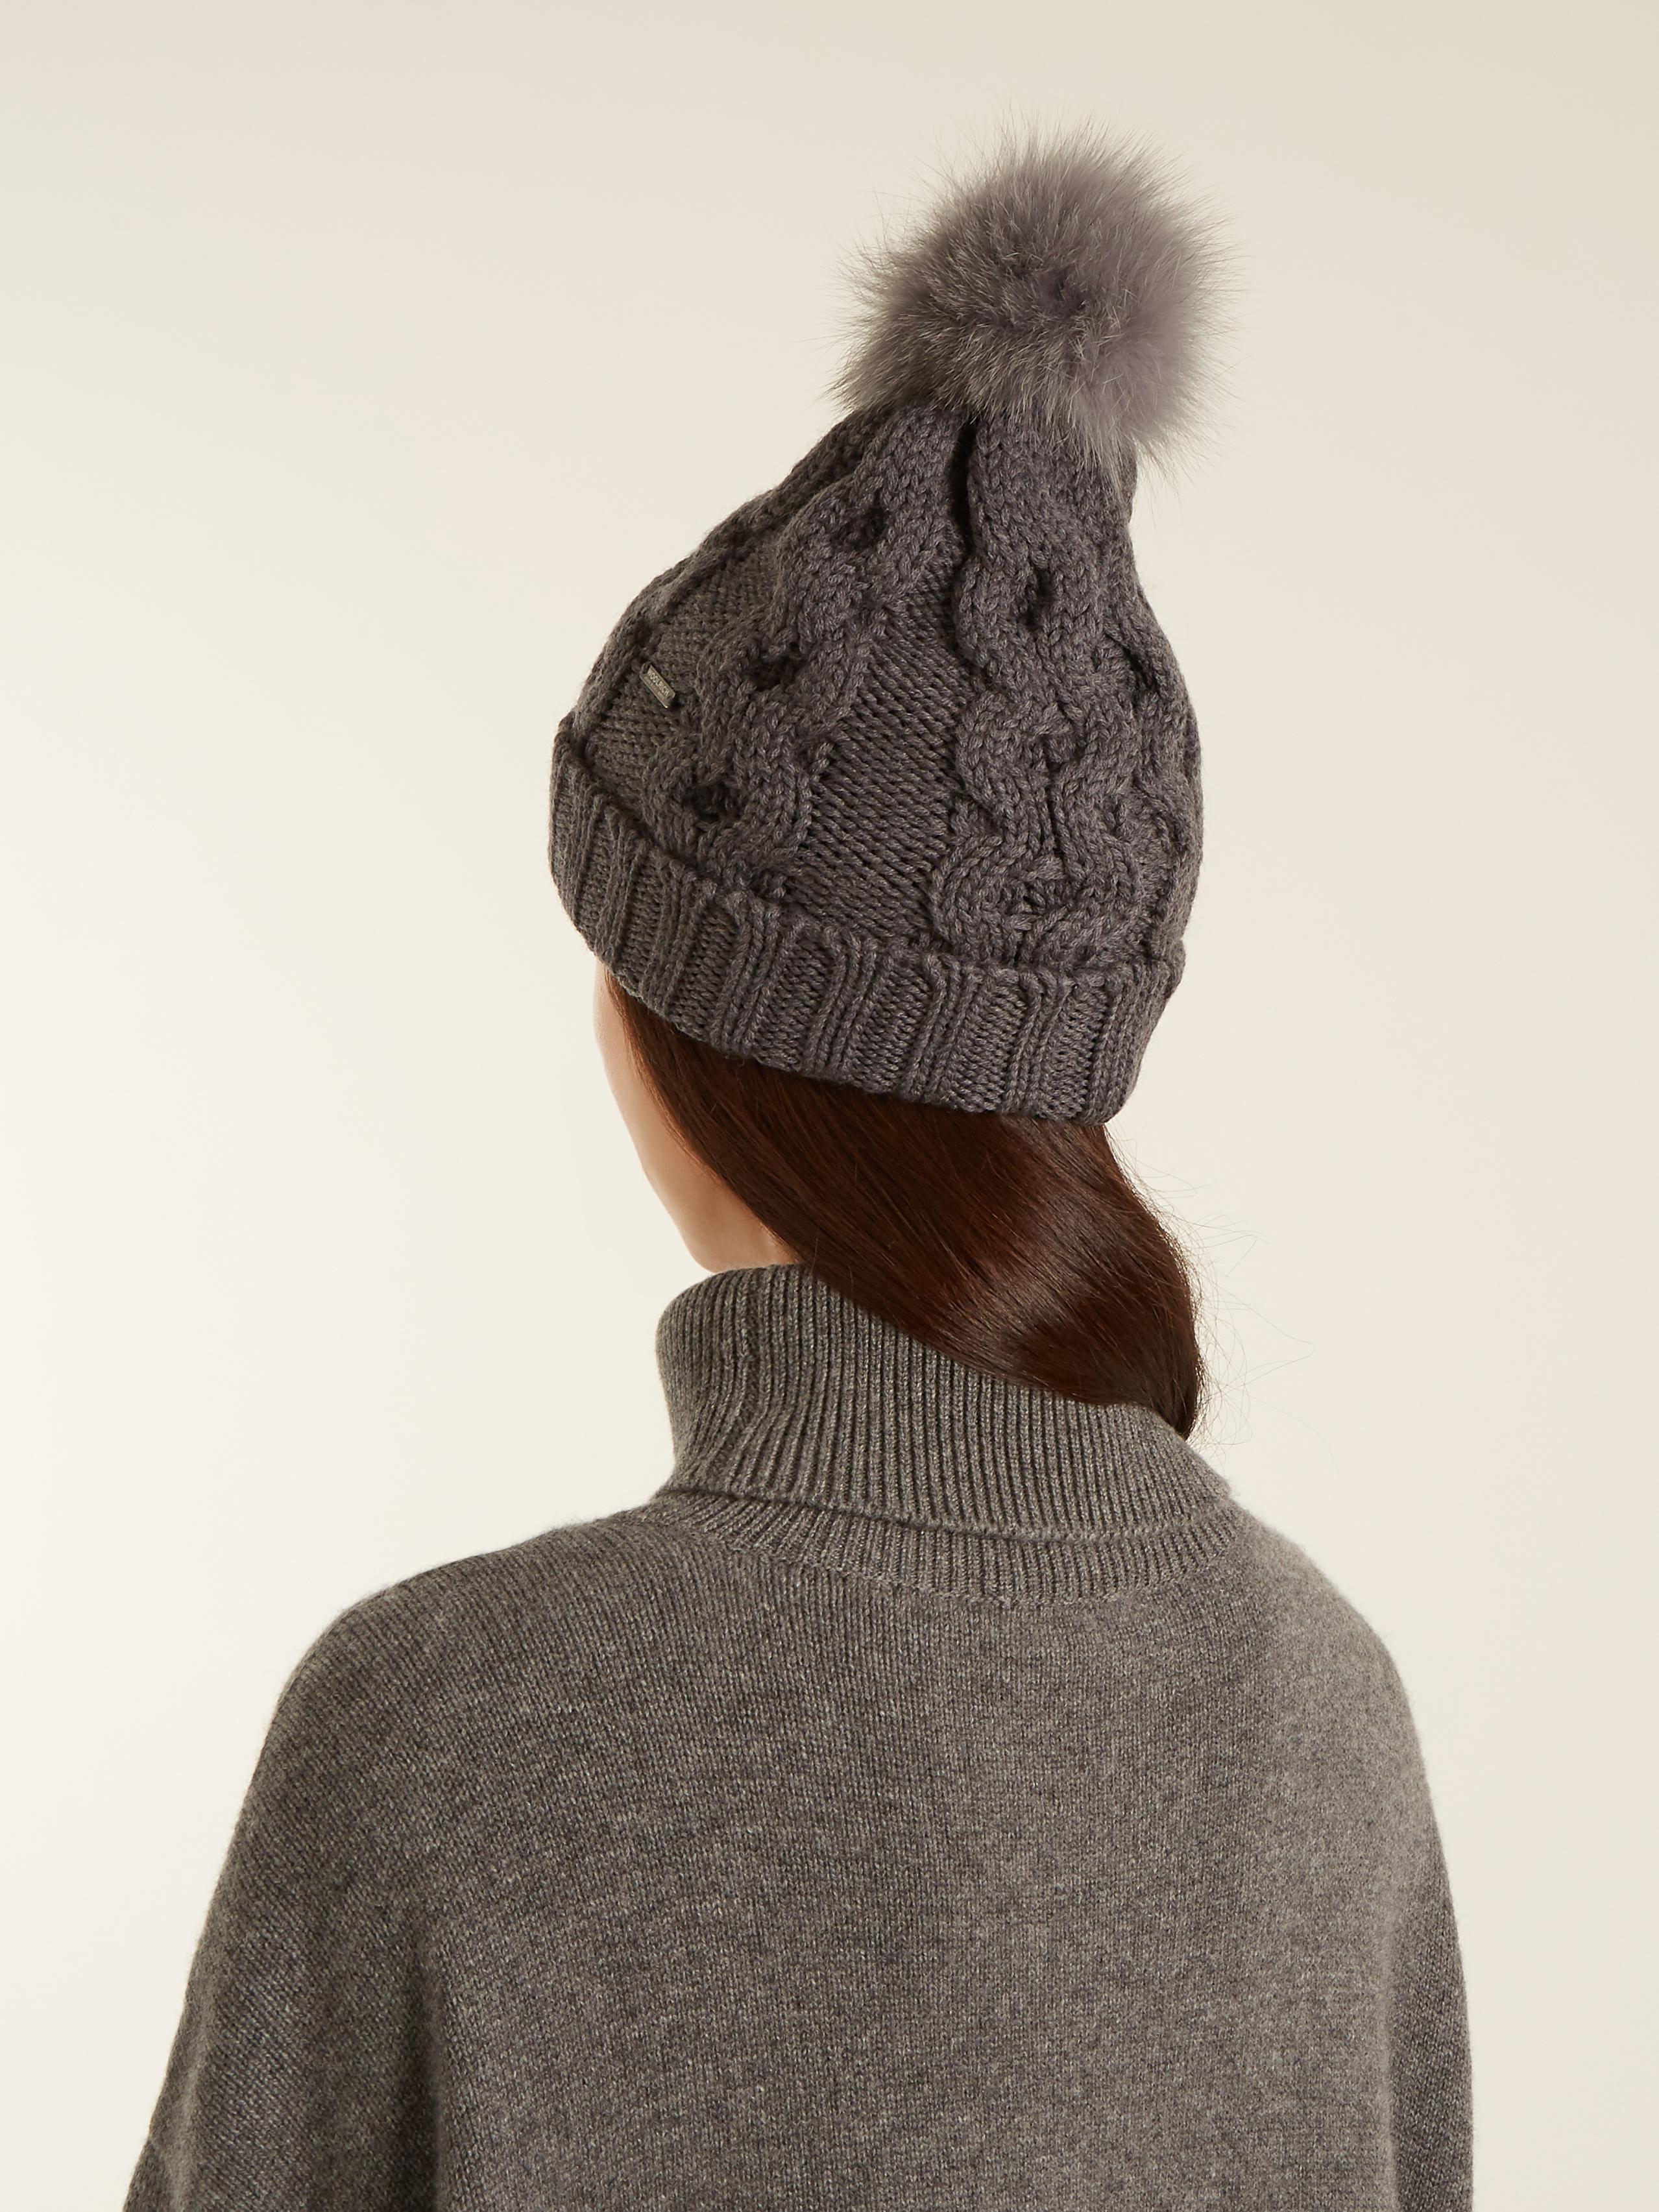 959bcccf81b01 Woolrich Serenity Fur-pompom Cable-knit Wool Beanie Hat in Gray - Lyst